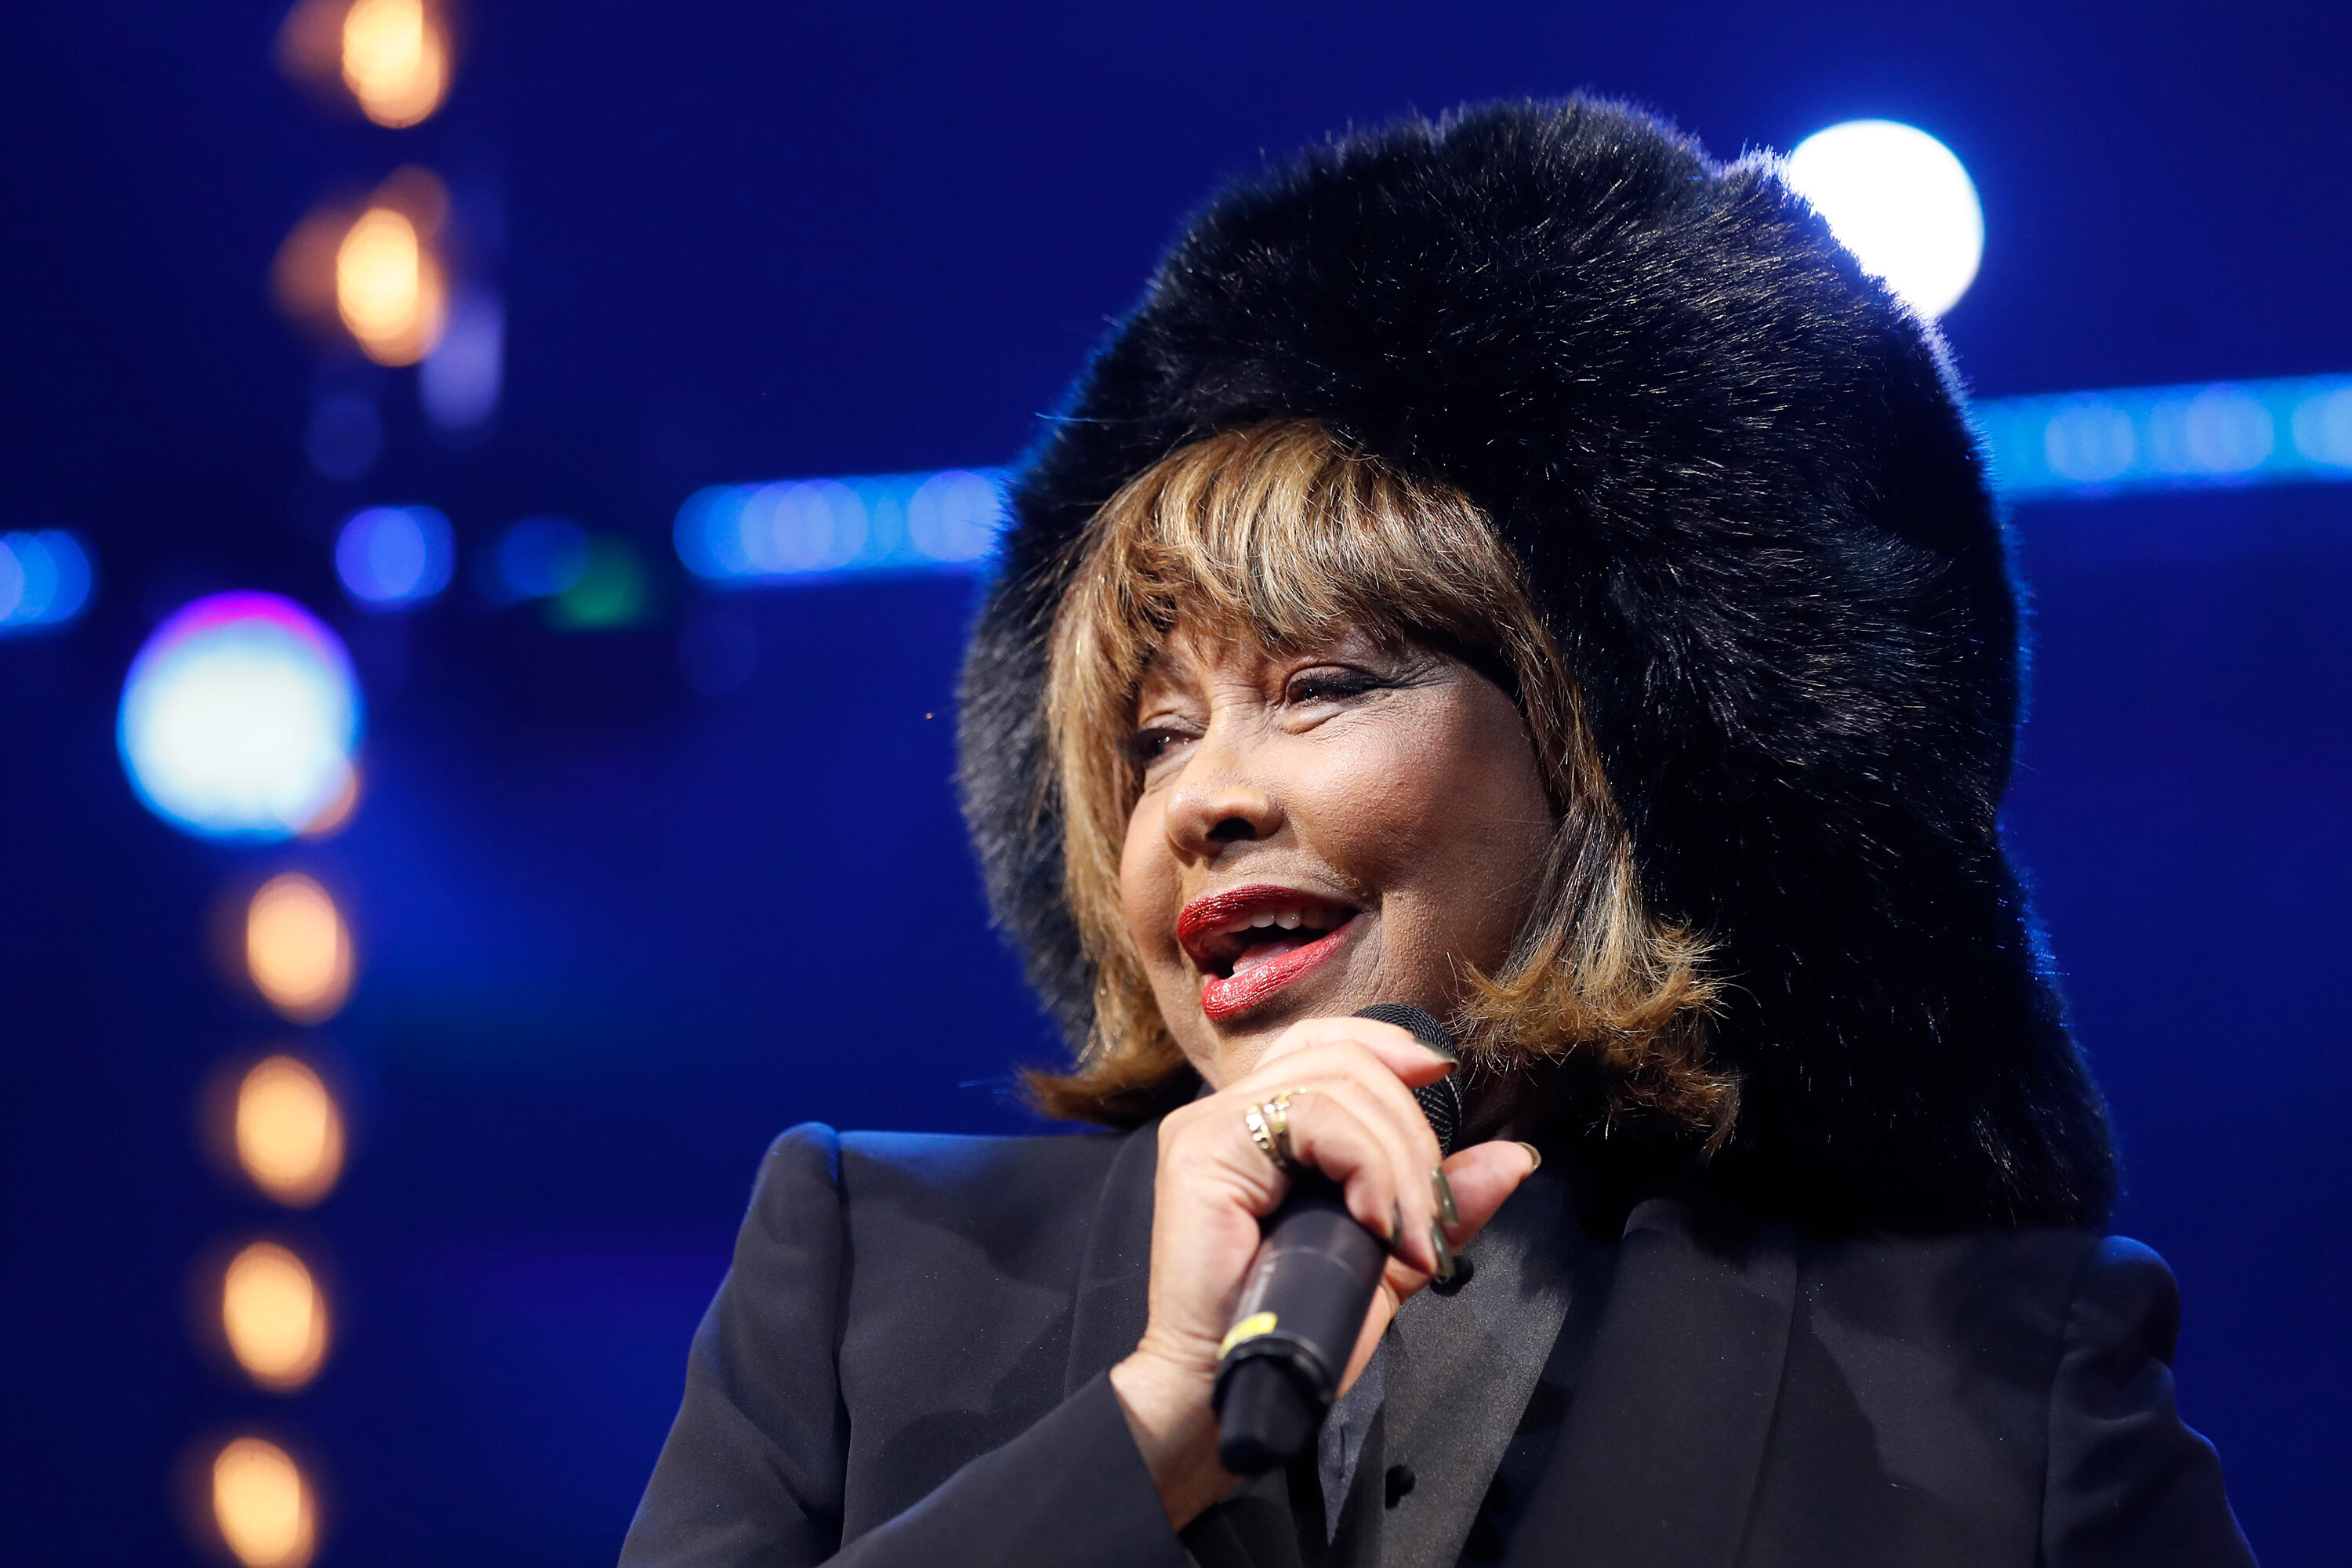 Tina Turner sells music catalog going back 60 years to BMG